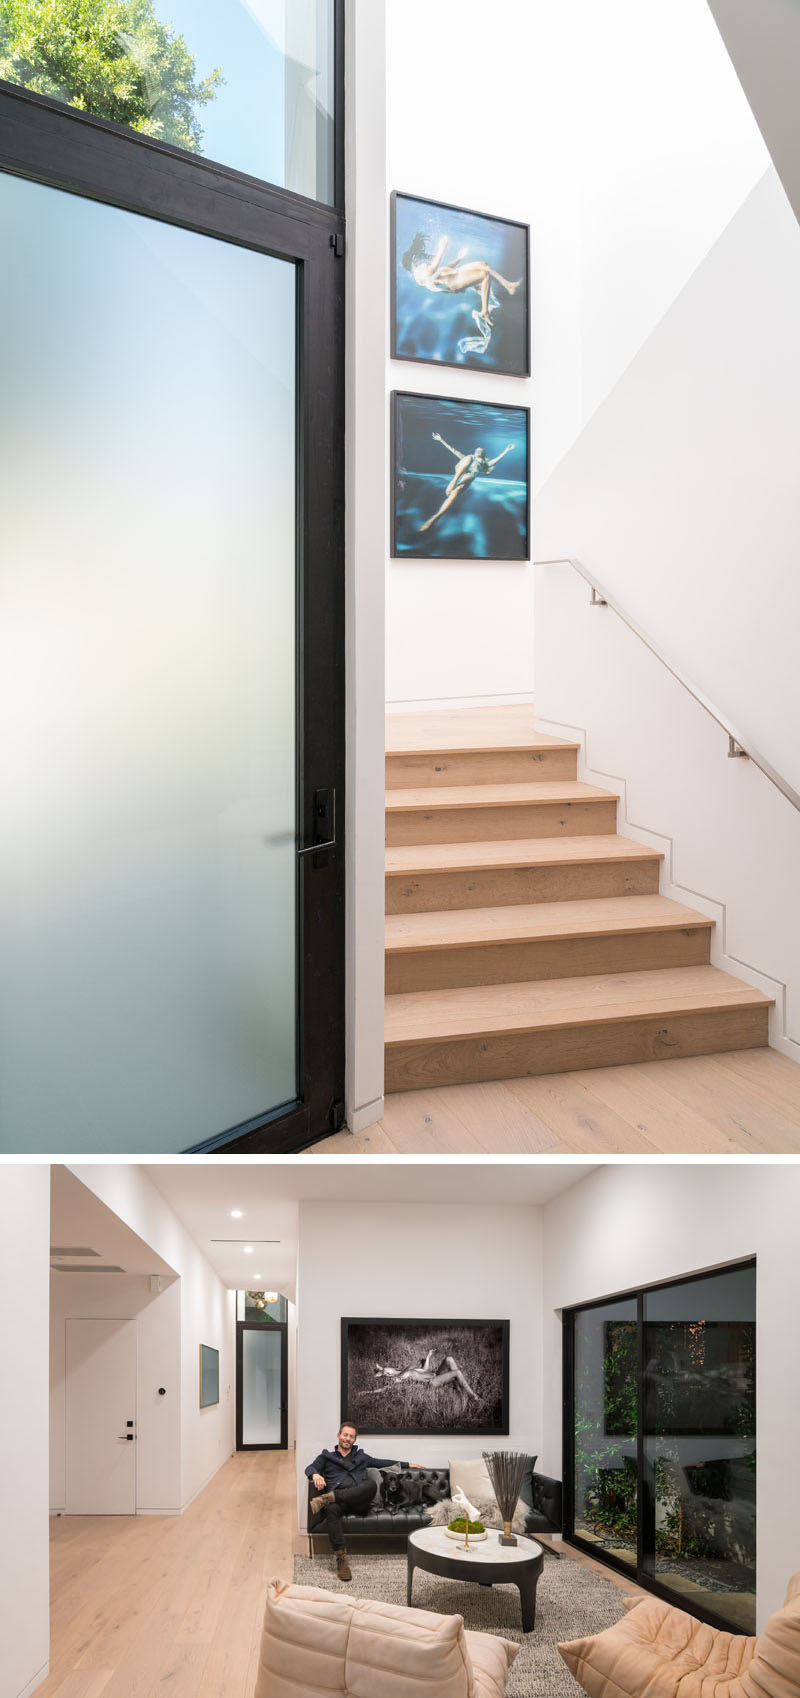 A frosted front door welcomes people to this modern house, and once inside, there's stairs that lead to the upper floor of the home, and a small sitting area. #FrontDoor #FrostedGlassDoor #SittingRoom